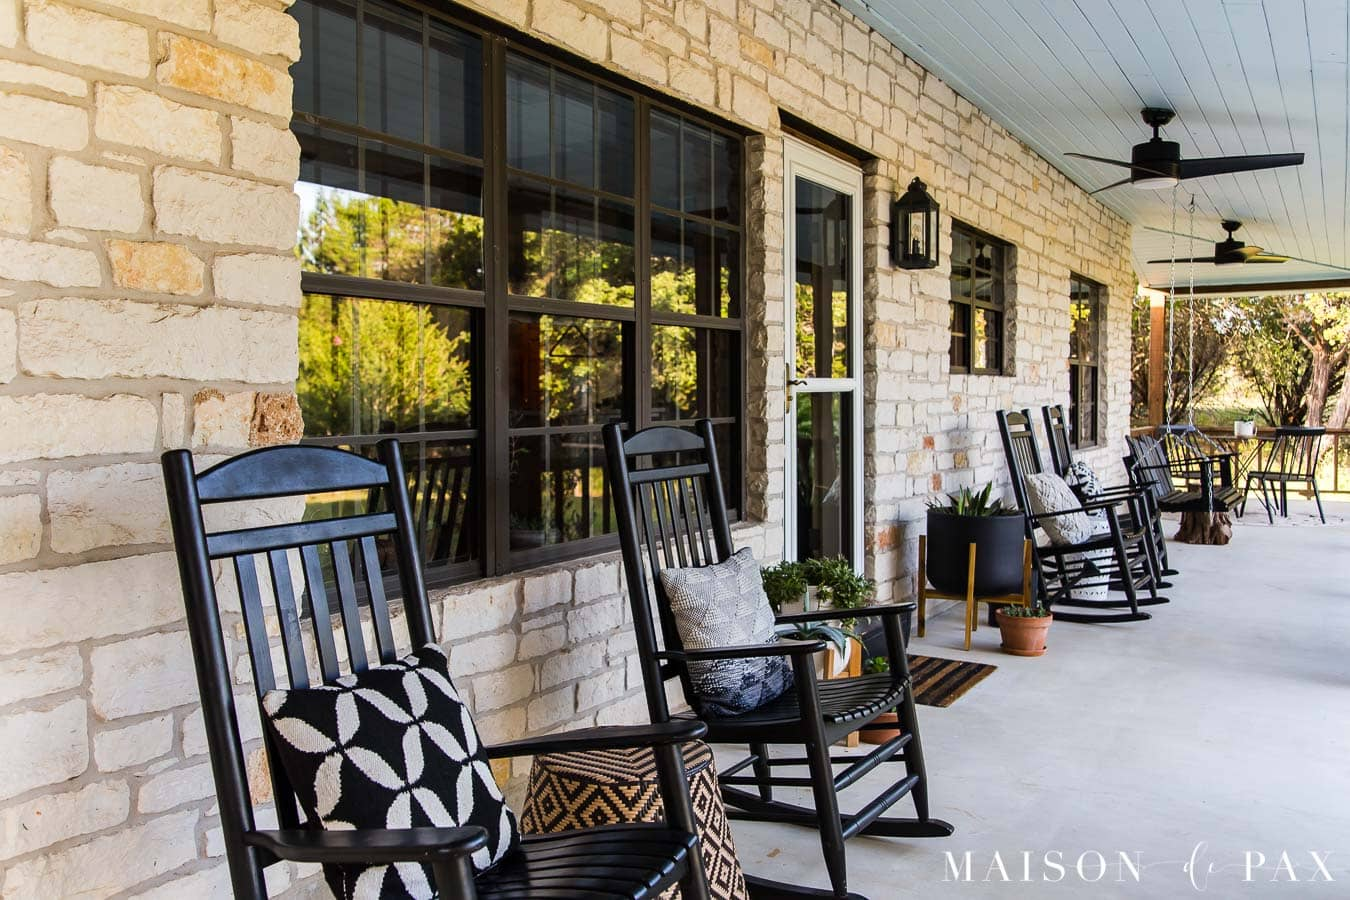 black rocking chairs with black and white throw pillows | Maison de Pax